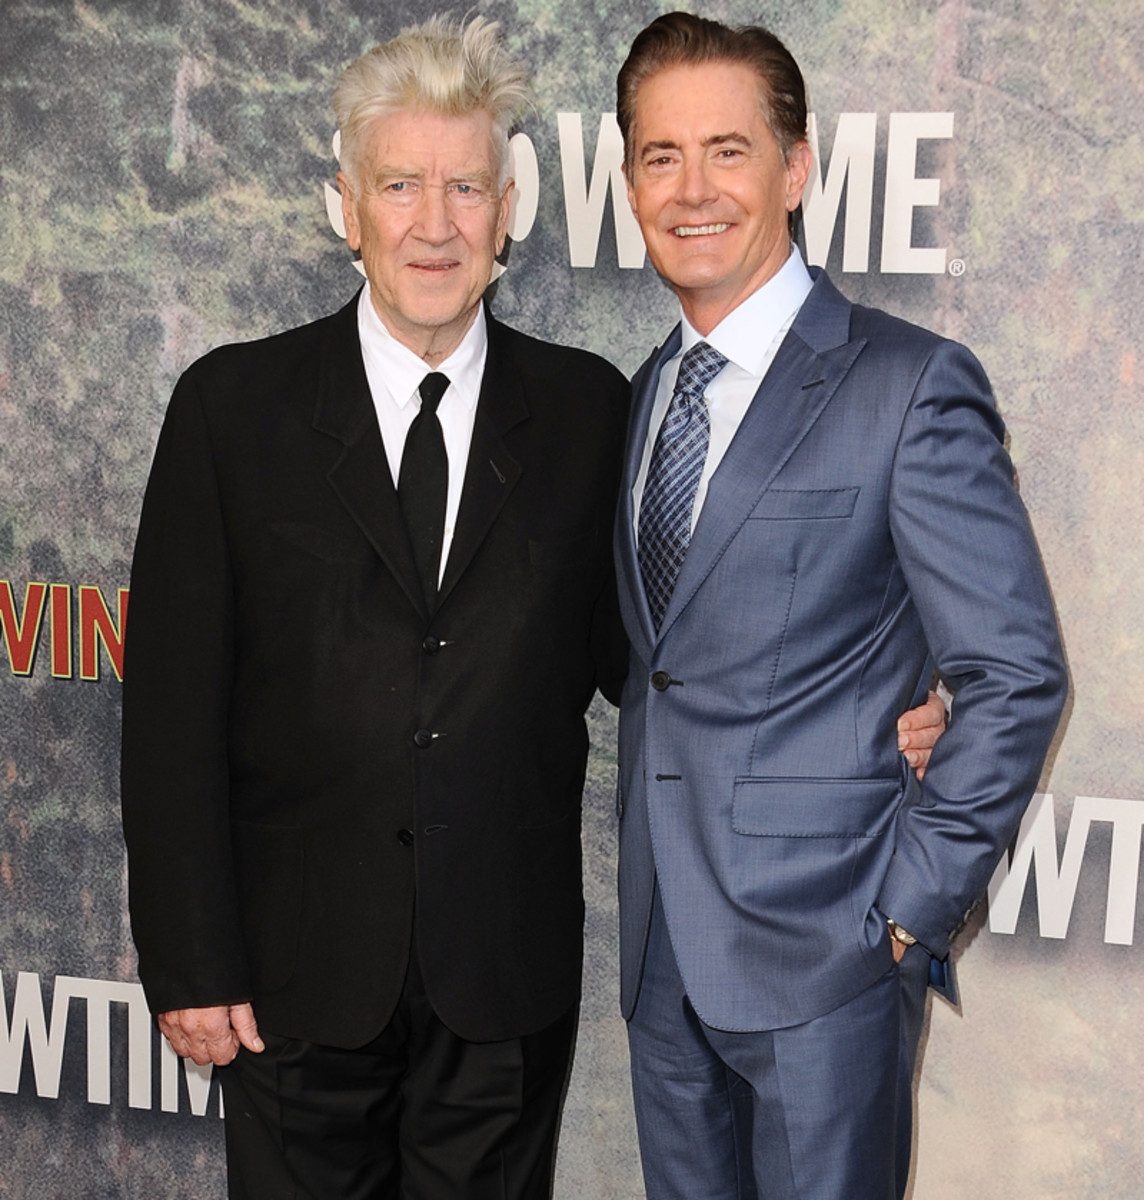 David Lynch and Kyle MacLachlan at 2017 Twin Peaks premiere